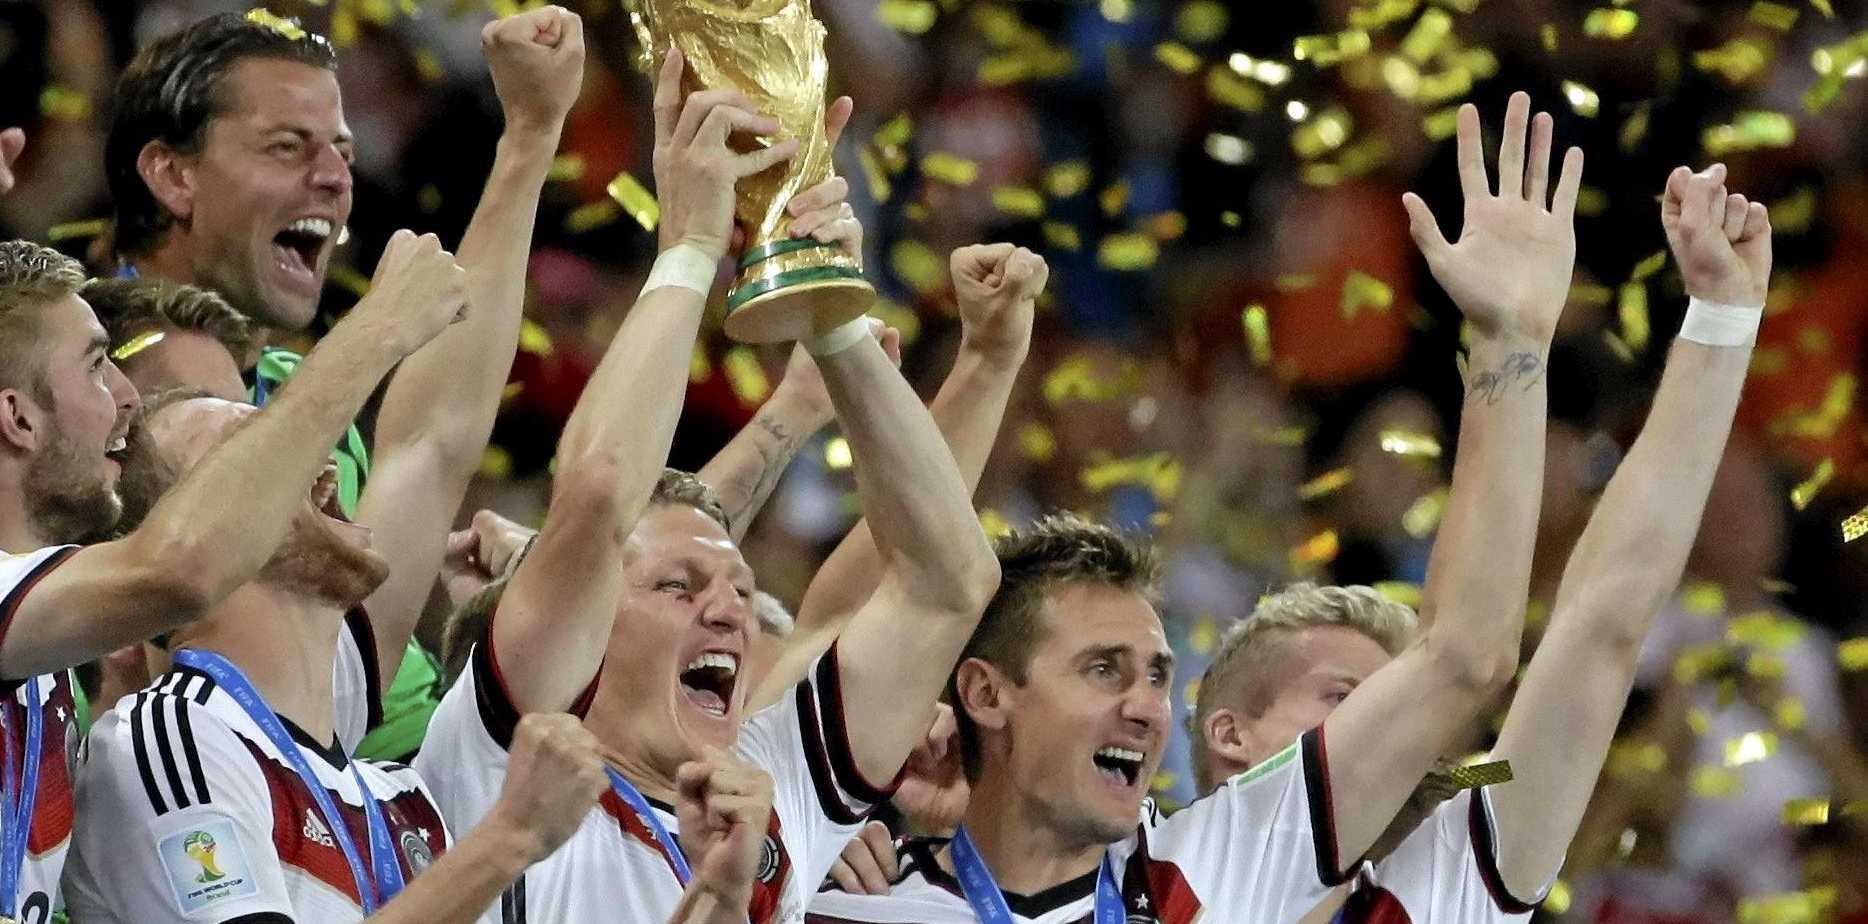 Germany's Bastian Schweinsteiger holds up the World Cup trophy as the team celebrates their 1-0 victor over Argentina after the World Cup final soccer match between Germany and Argentina at the Maracana Stadium in Rio de Janeiro, Brazil, Sunday, July 13, 2014. (AP Photo/Felipe Dana)